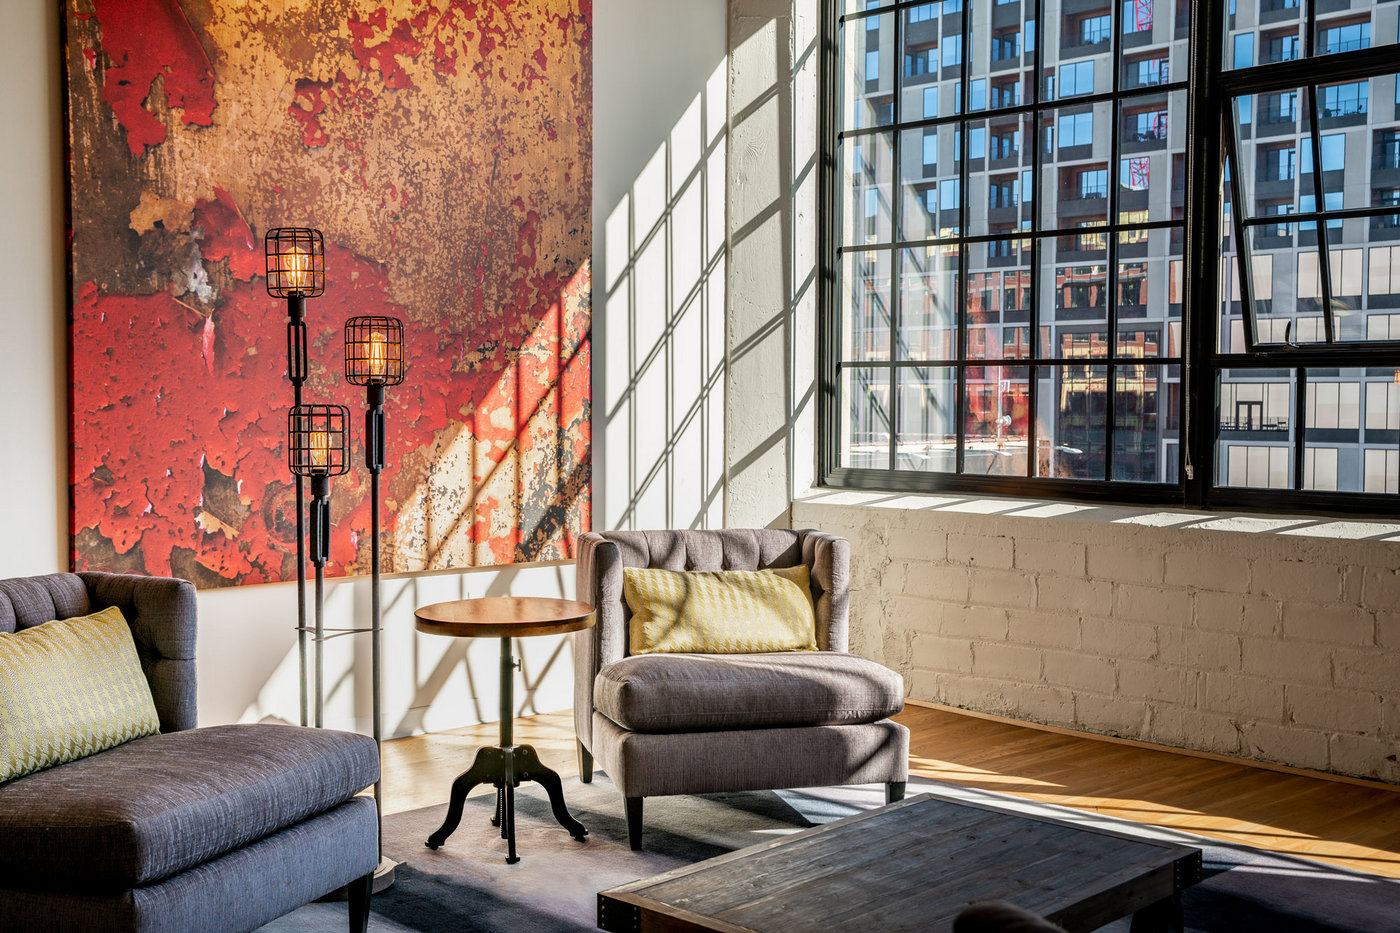 How to Prep for Interior Architectural Photos